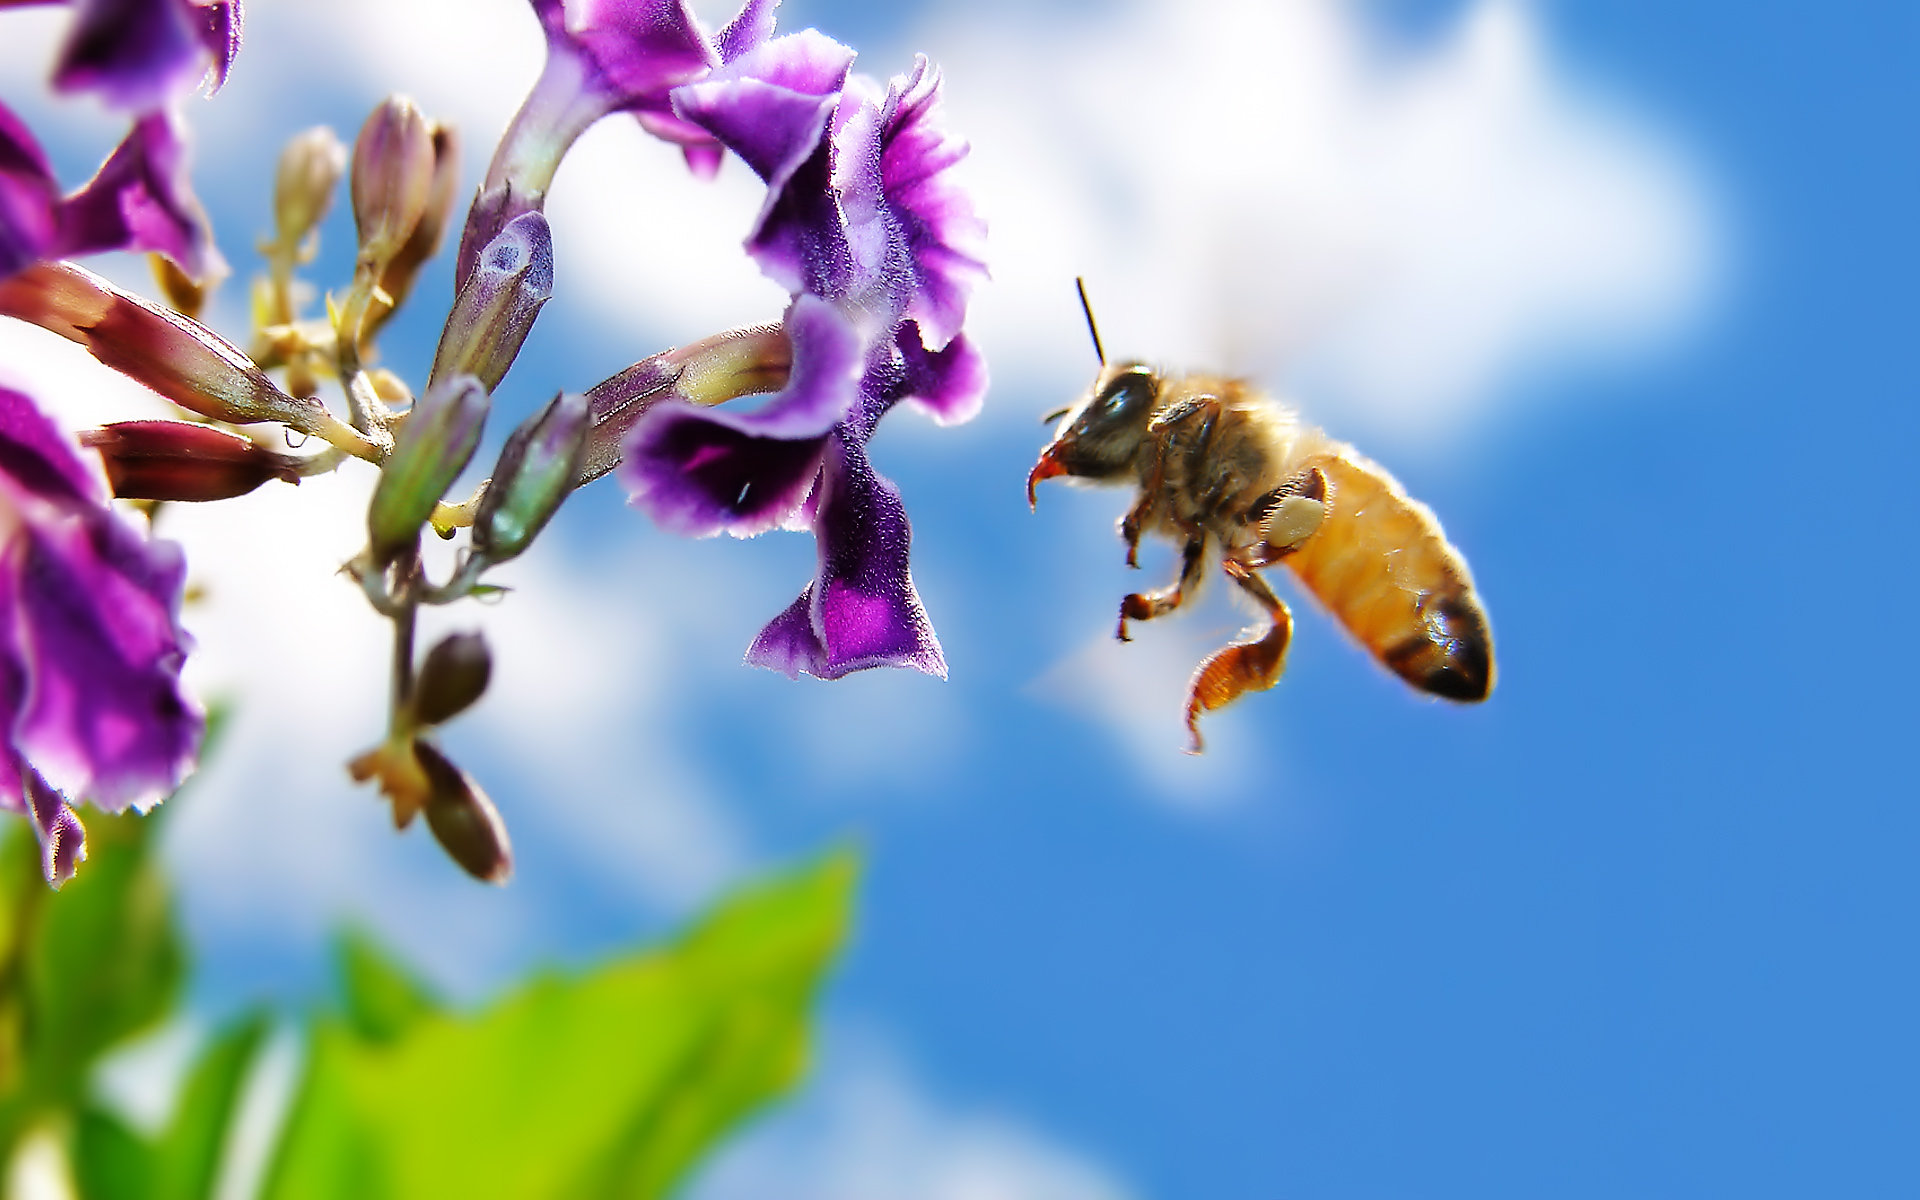 Free Bee high quality wallpaper ID:460930 for hd 1920x1200 computer